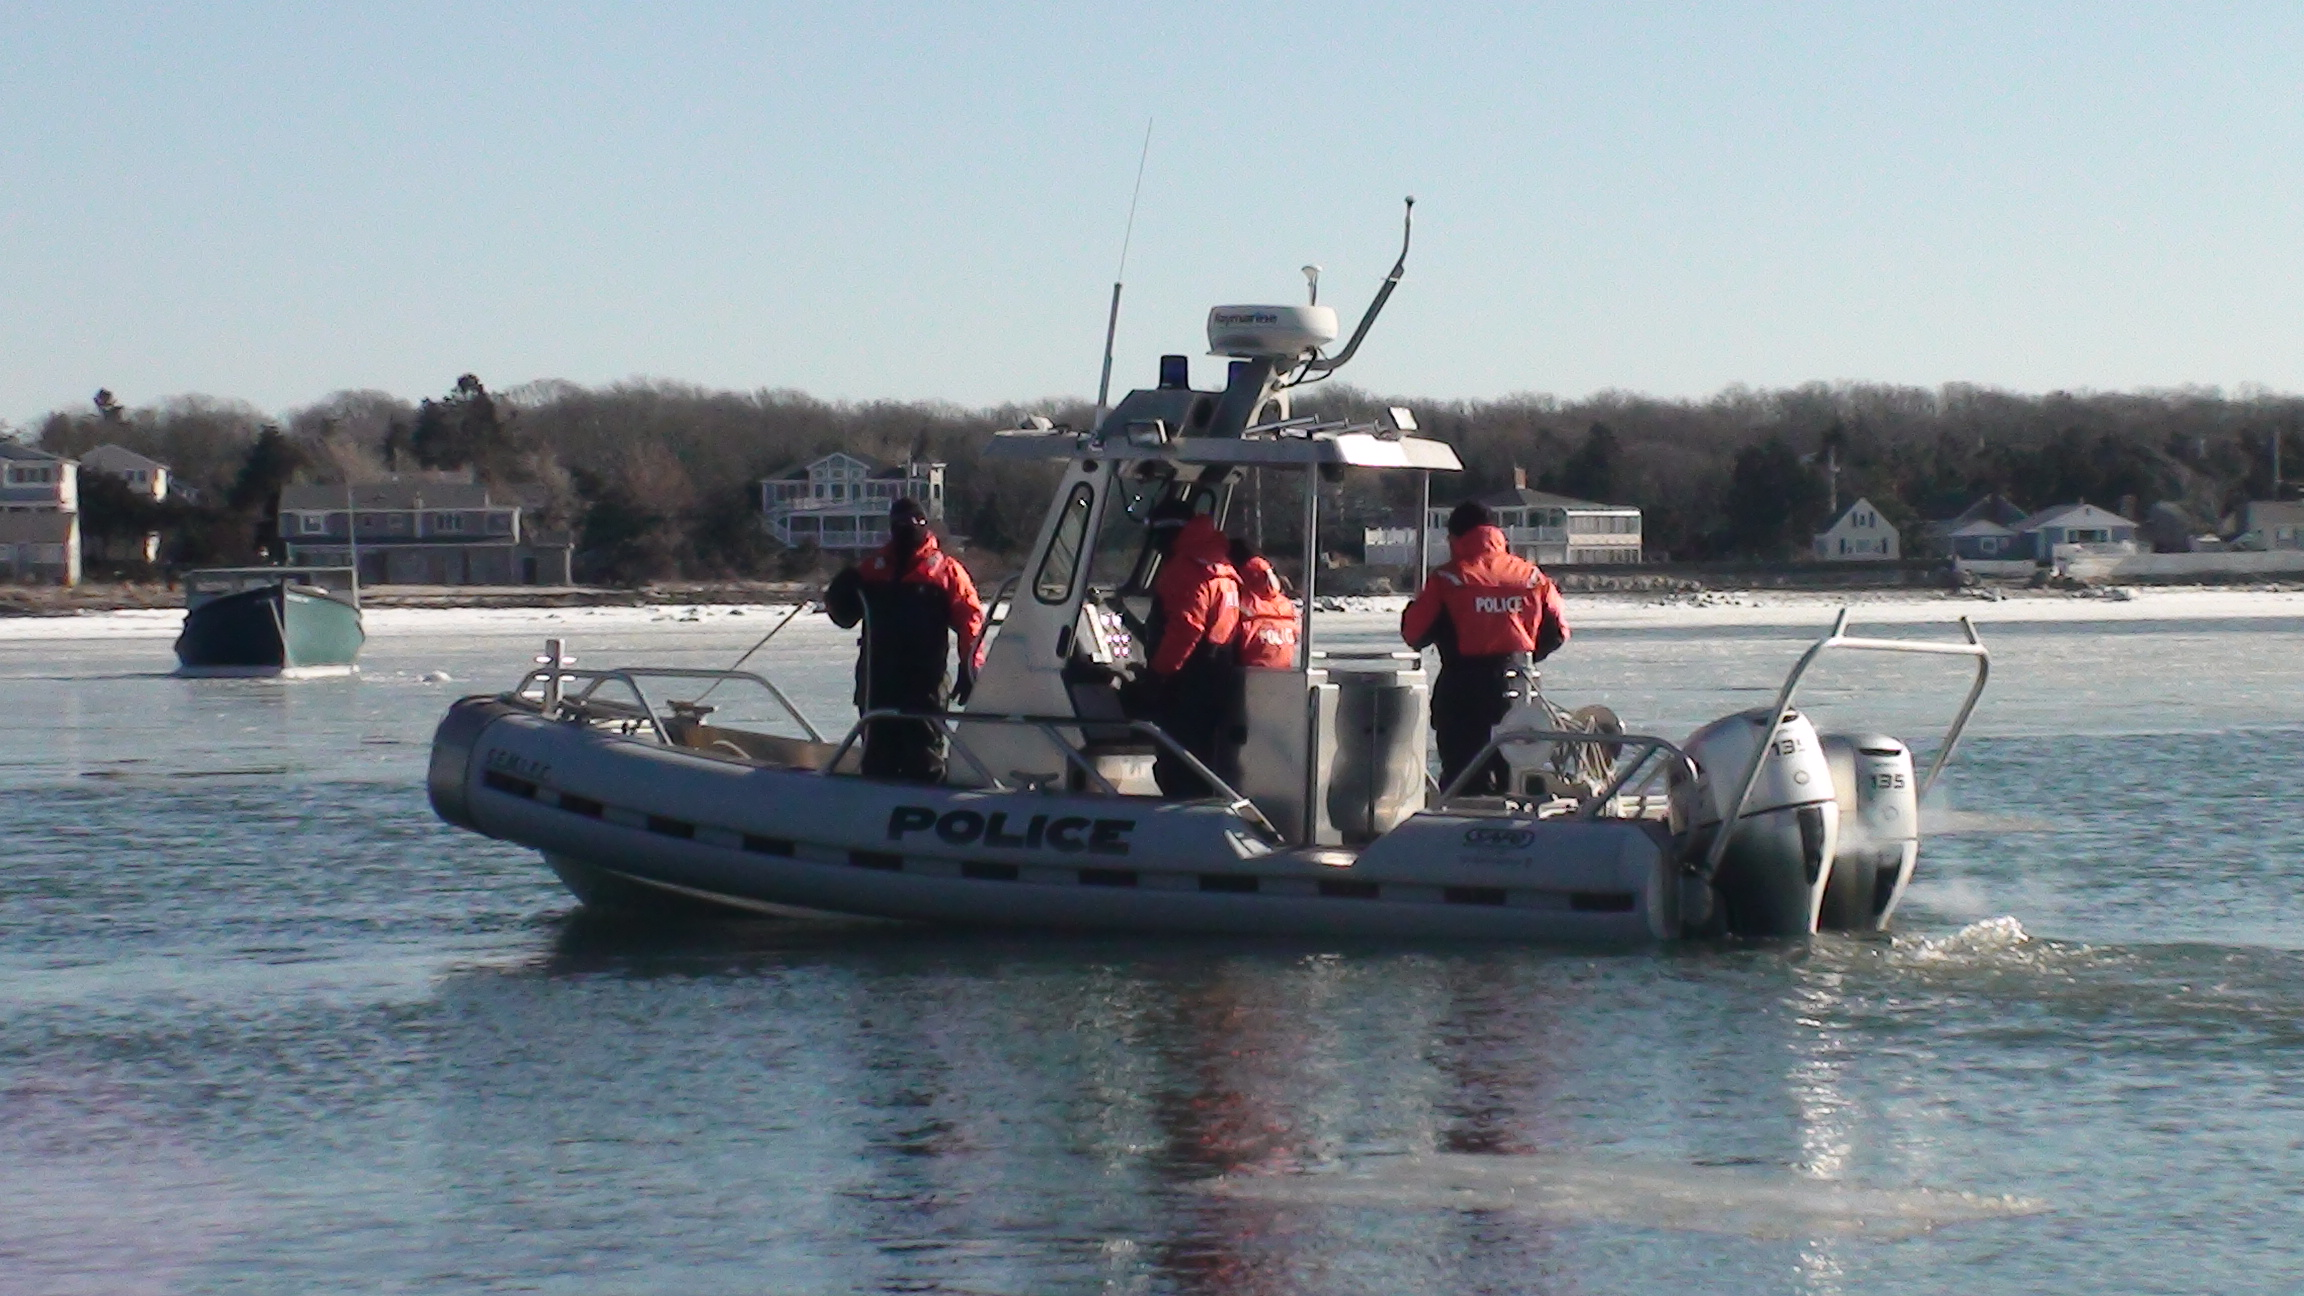 SEMLEC DIVE TEAM LAUNCH FROM HOPPY'S LANDING